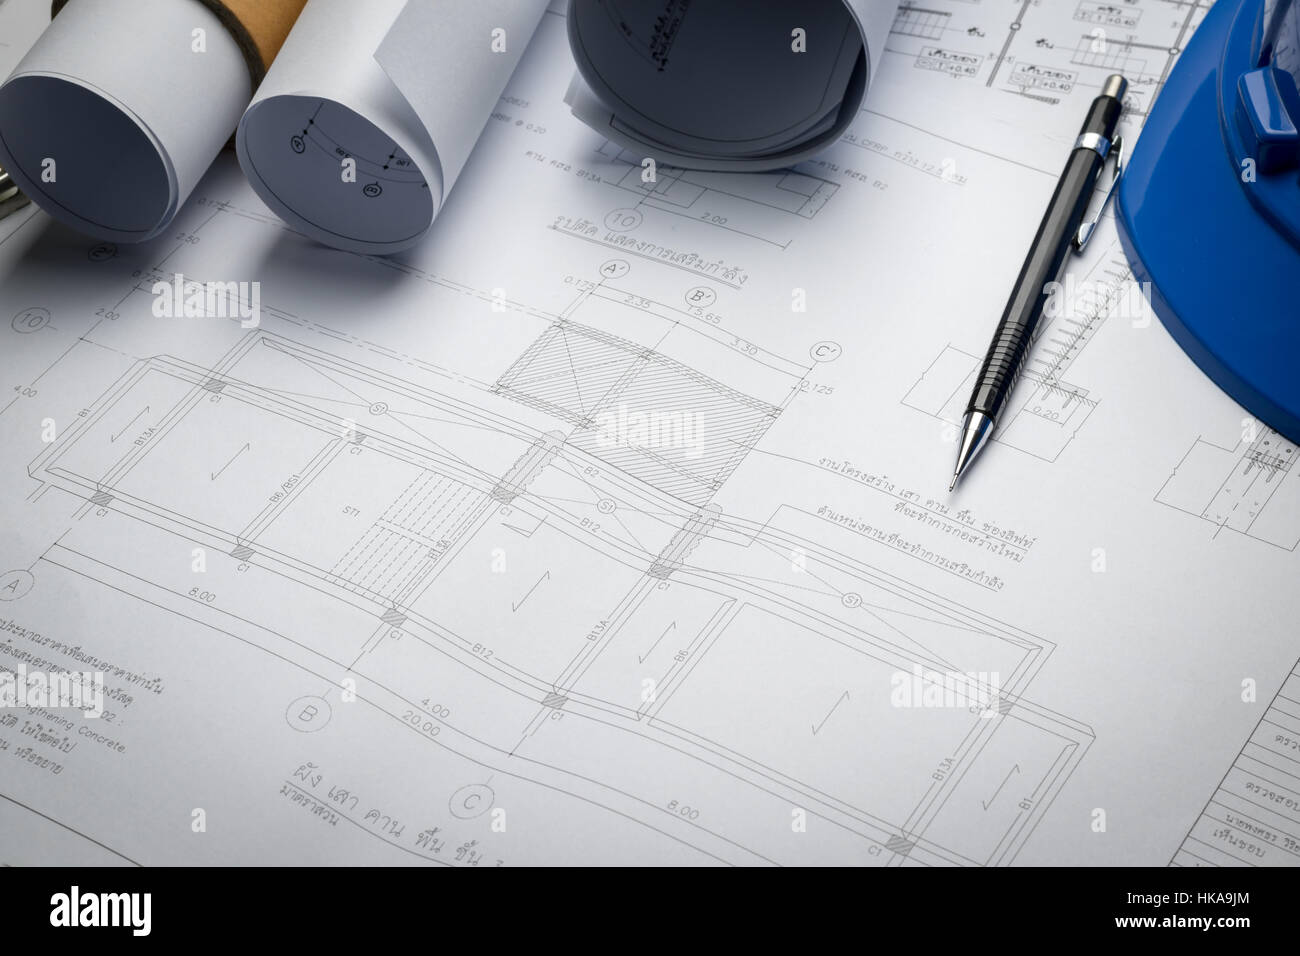 Engineering diagram blueprint paper drafting project sketch stock engineering diagram blueprint paper drafting project sketch architecturalselective focus malvernweather